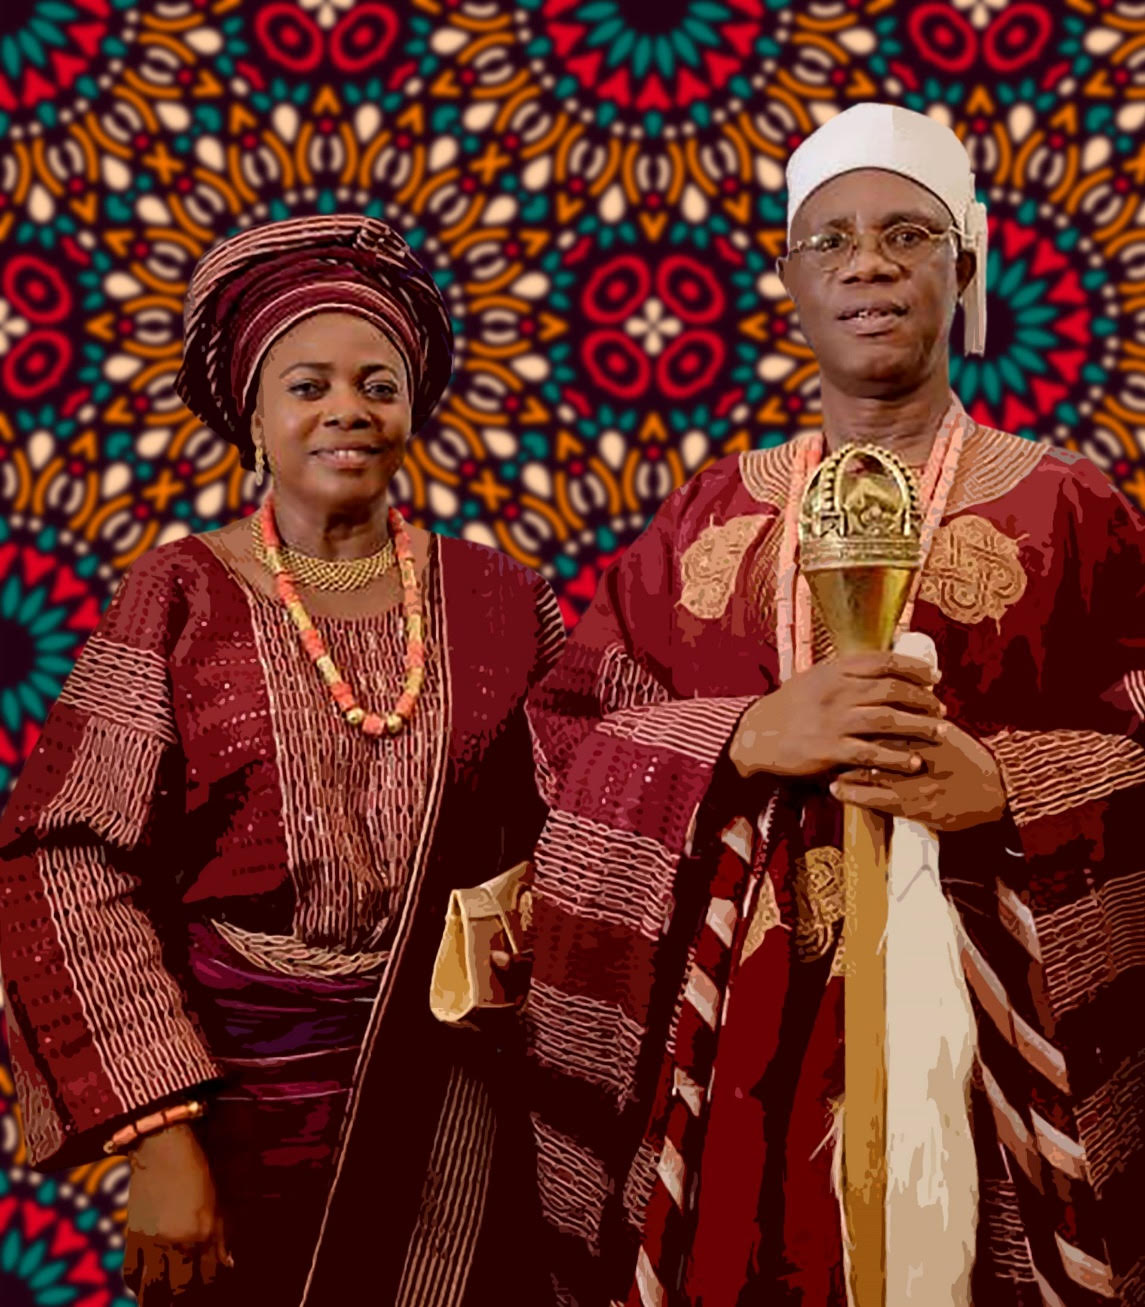 The Power Of Oral Tradition: Oba Kiladejo On The Role Of Women In Ondo History